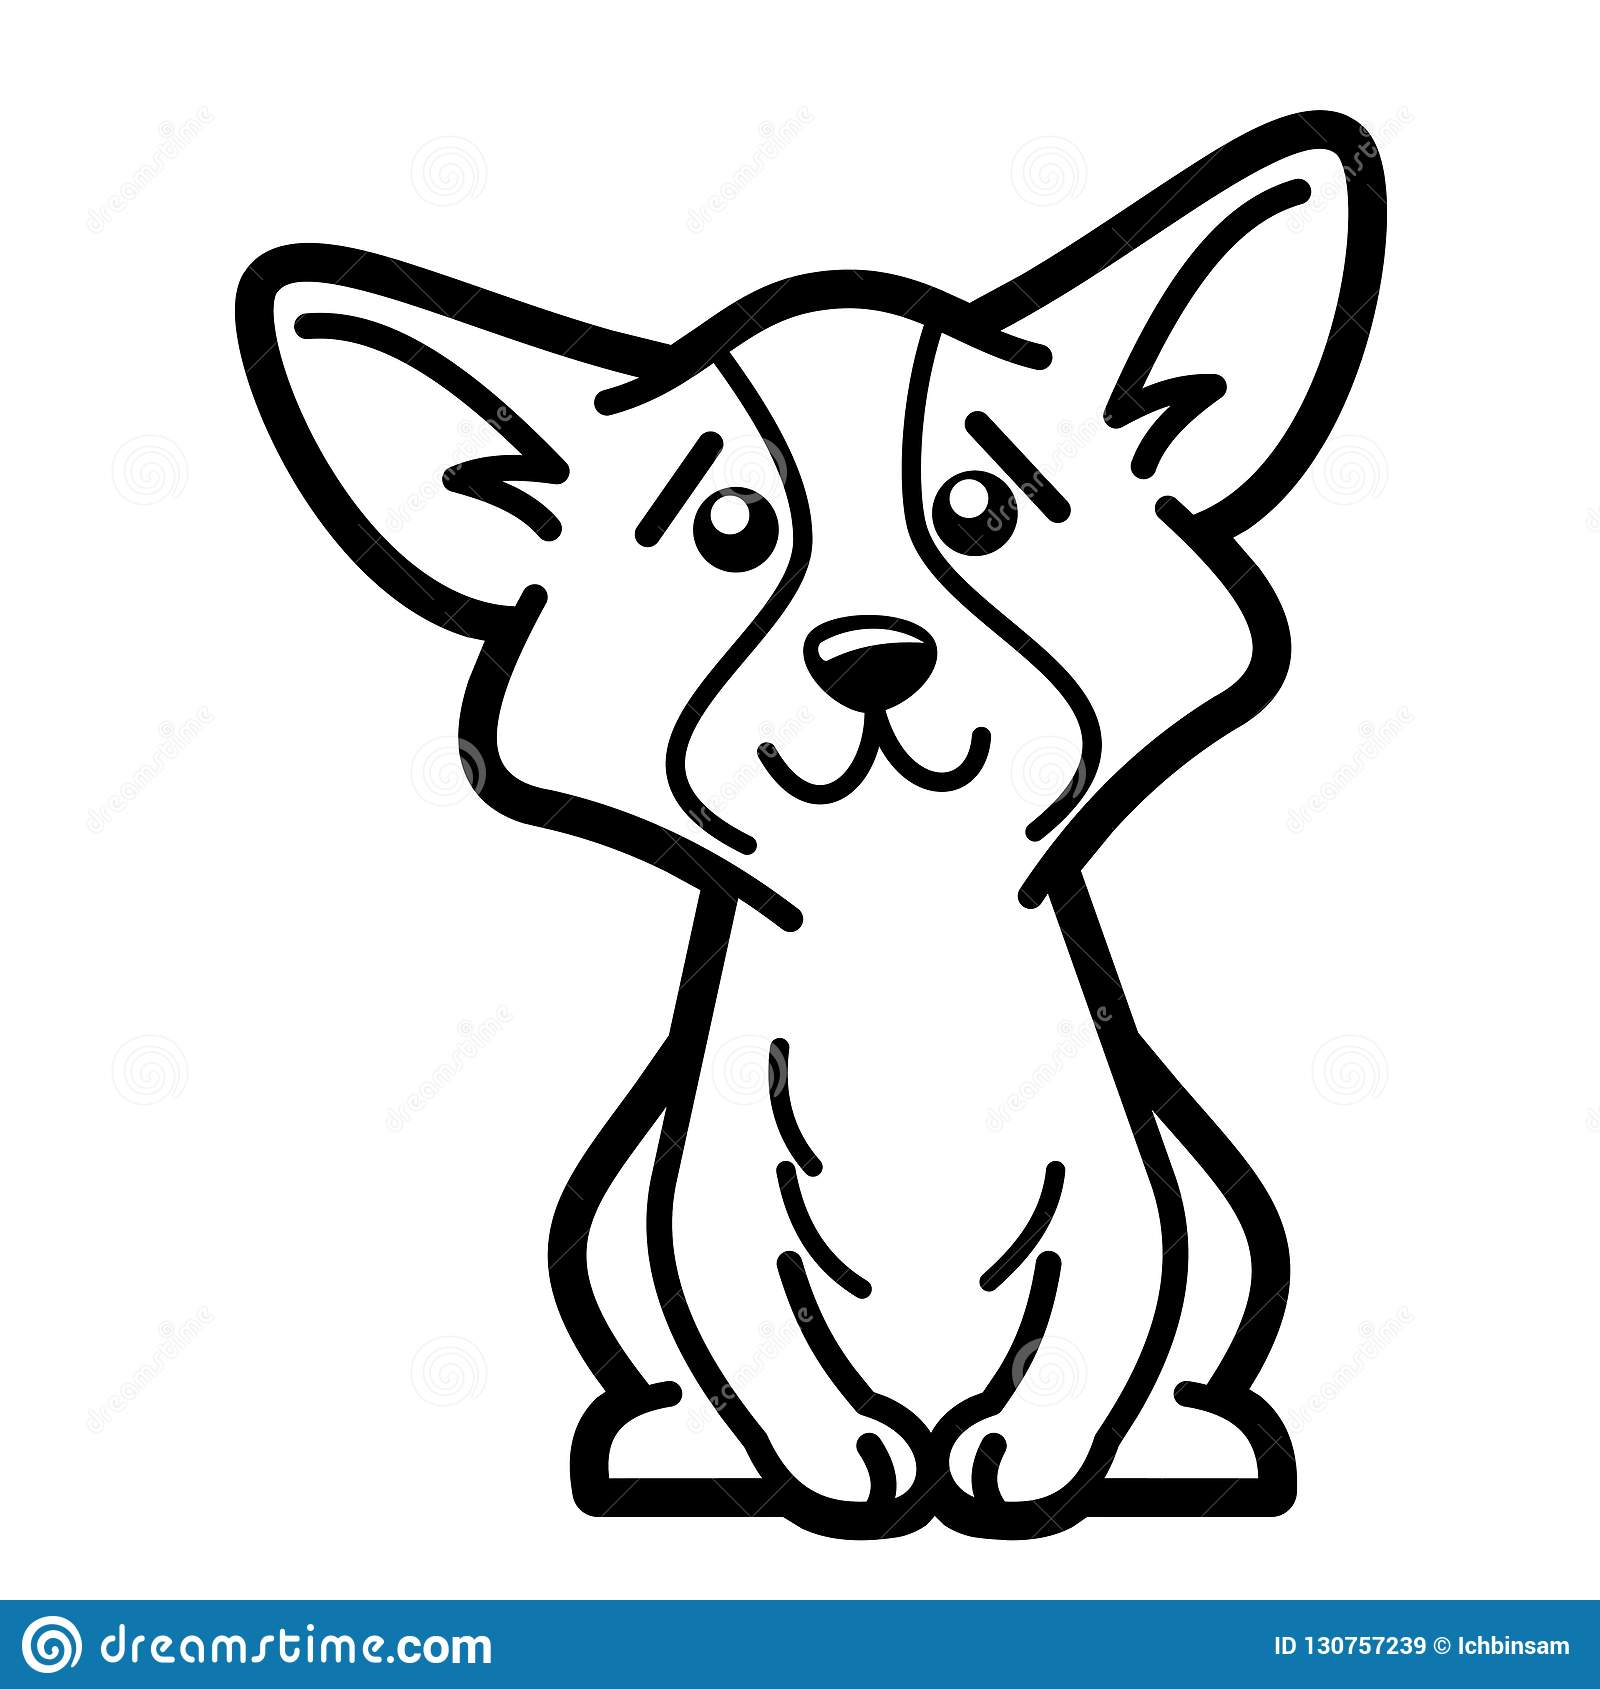 Free Printable Coloring Pages (With images) | Puppy coloring pages ... | 1689x1600